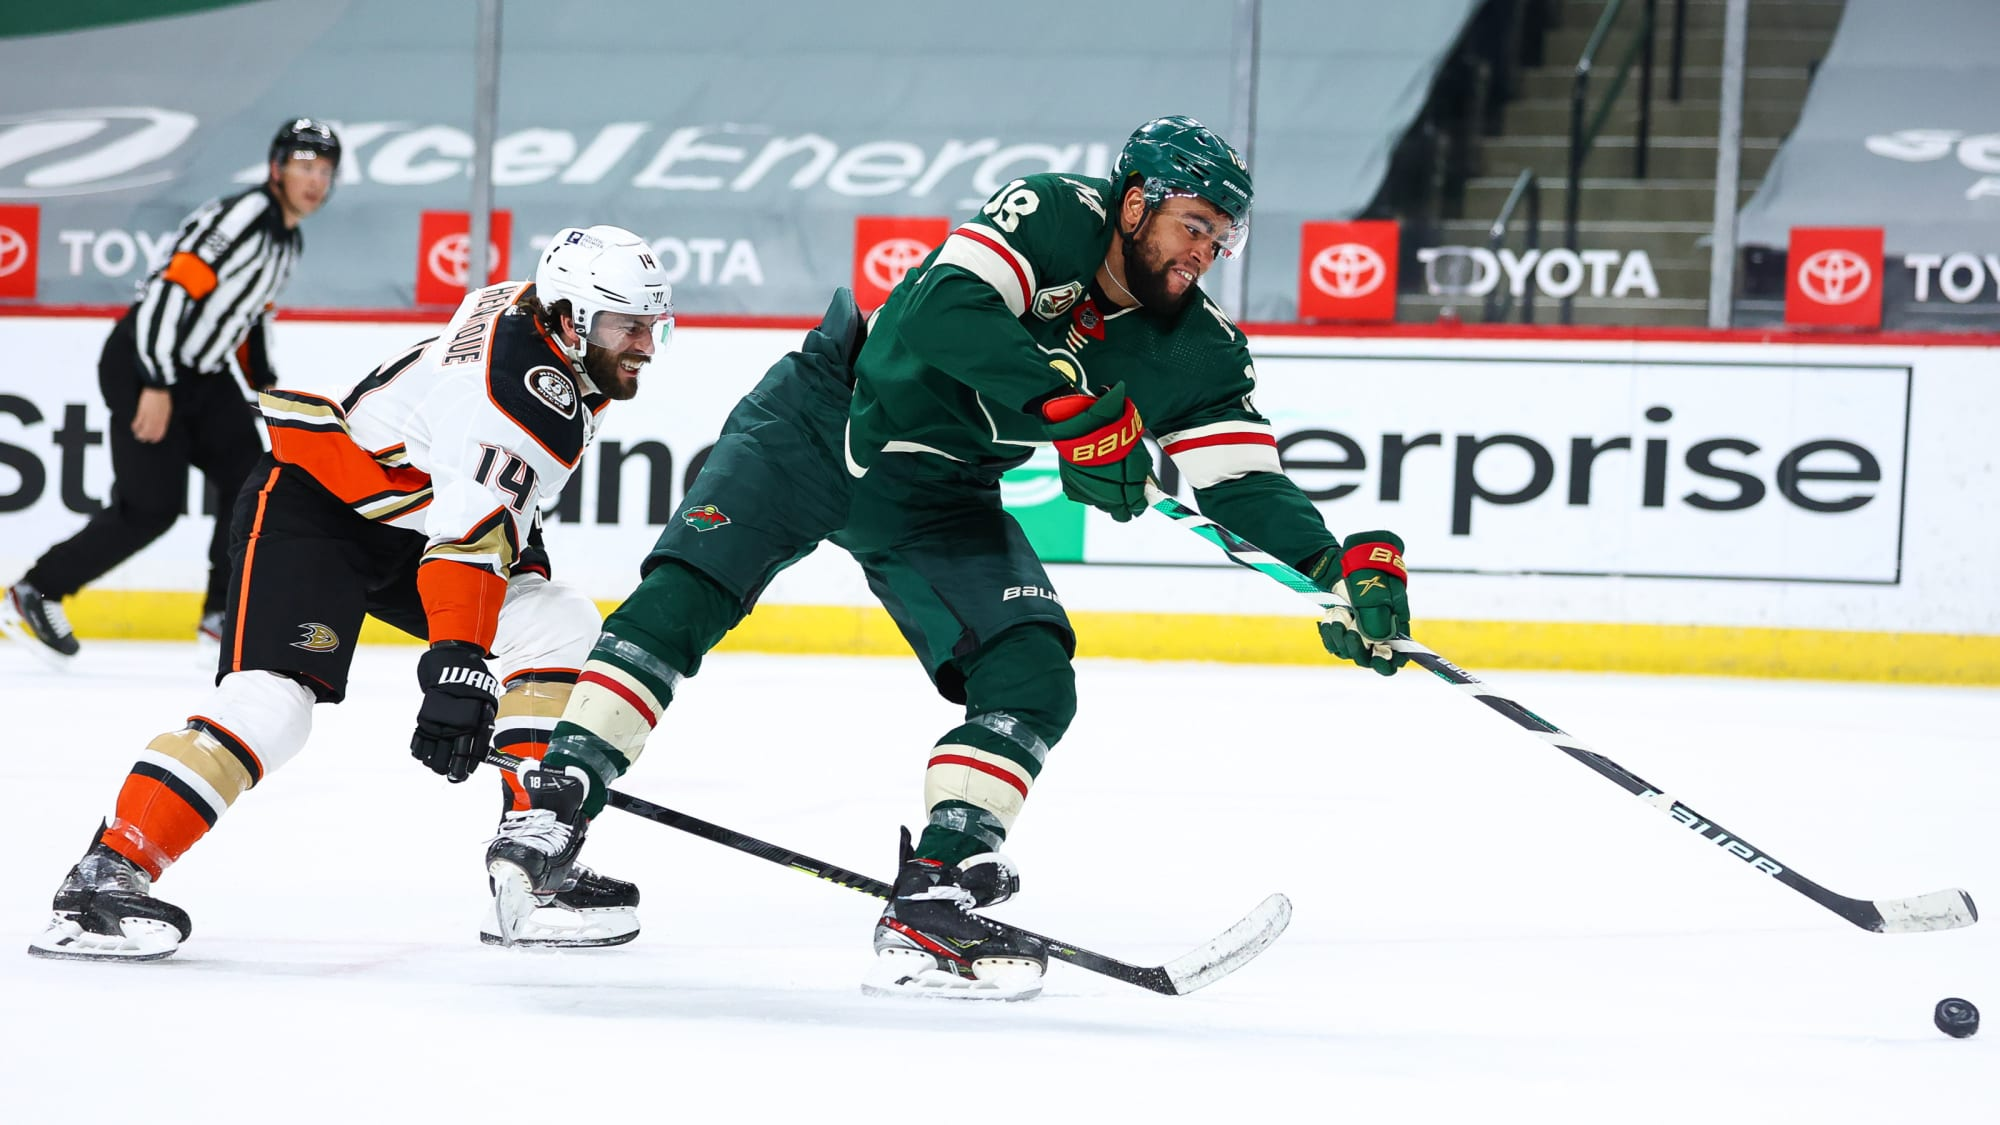 Kraken Expansion Draft: Who could be taken from the Minnesota Wild